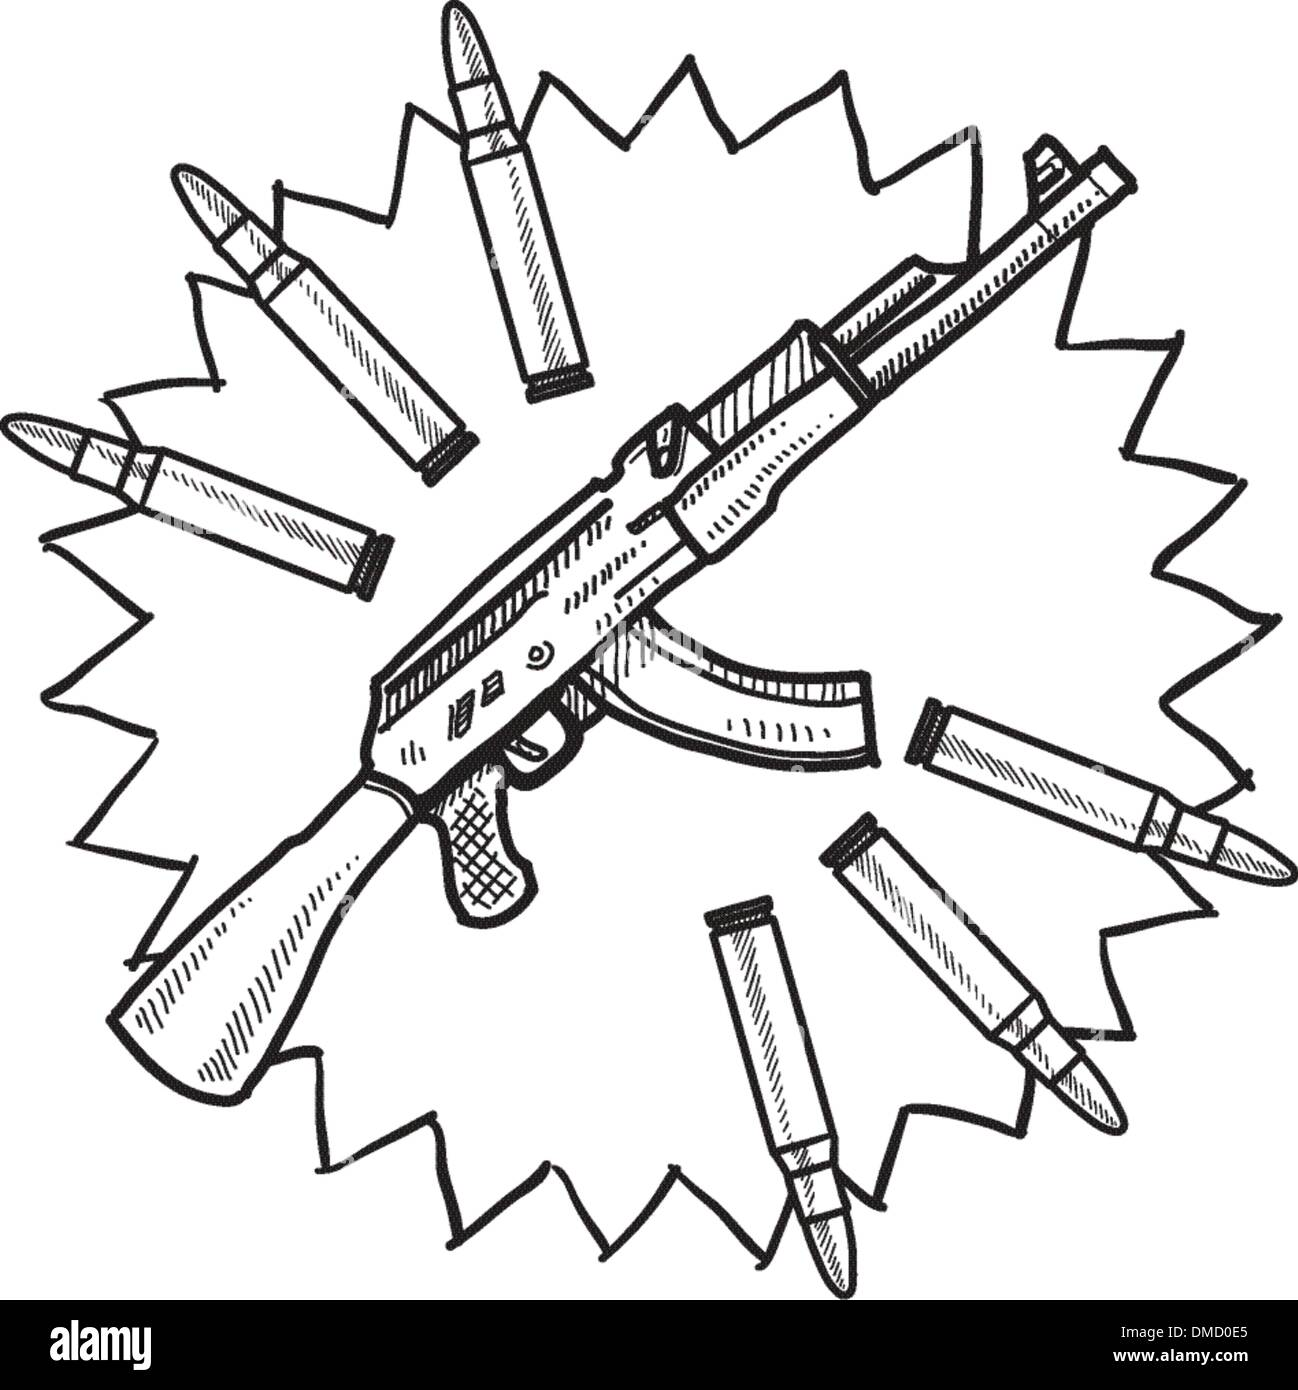 gun rights cut out stock images pictures page 2 alamy 18th Century Explosive Artillery assault rifle sketch stock image